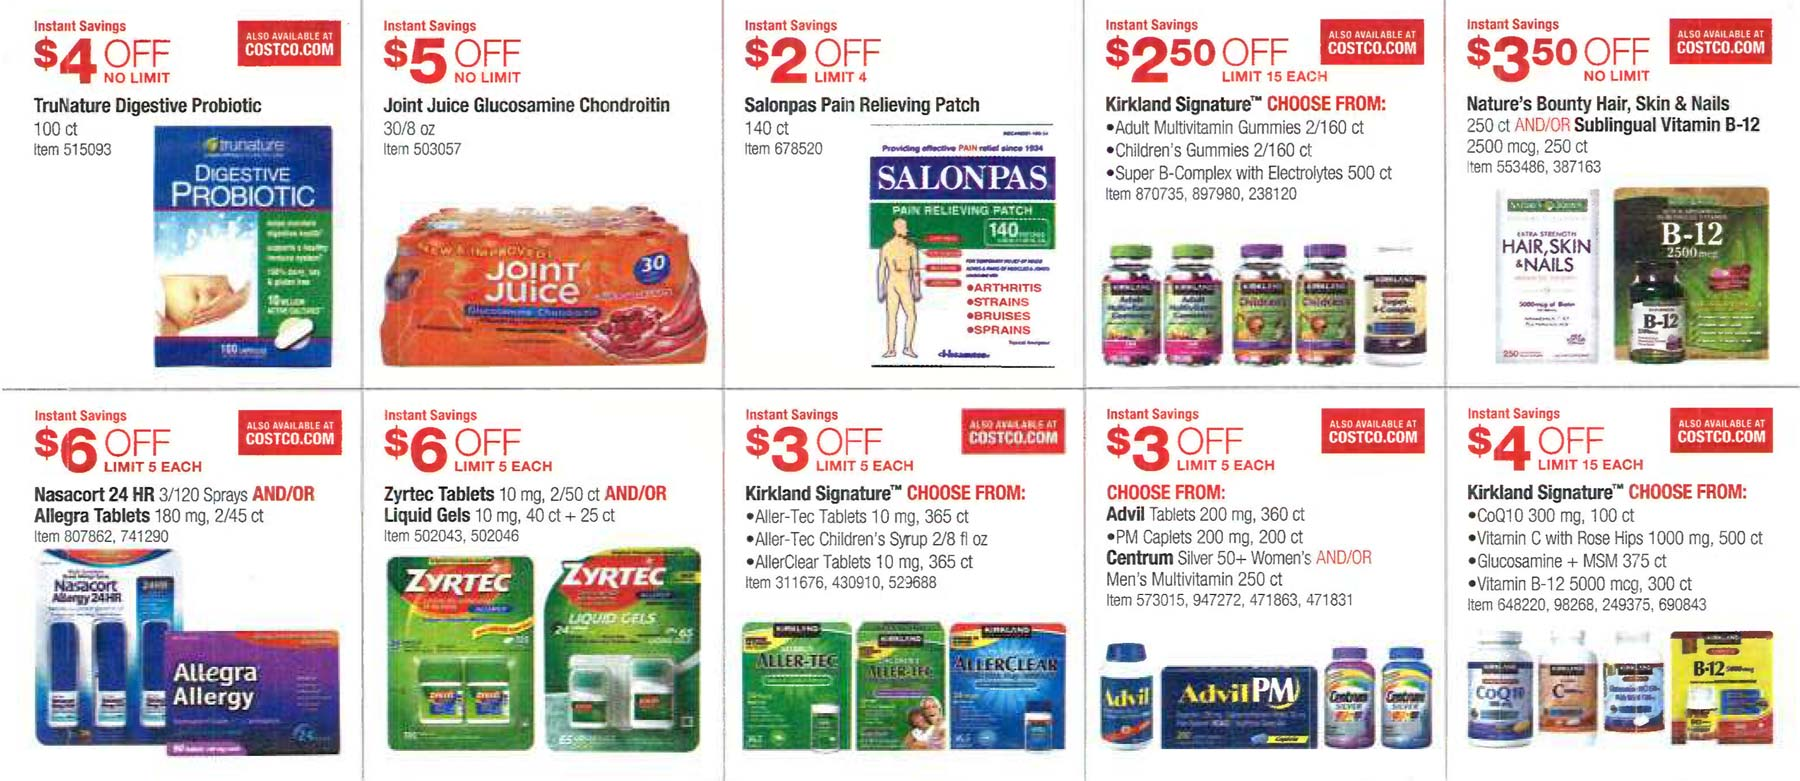 Costco photo coupon promo code